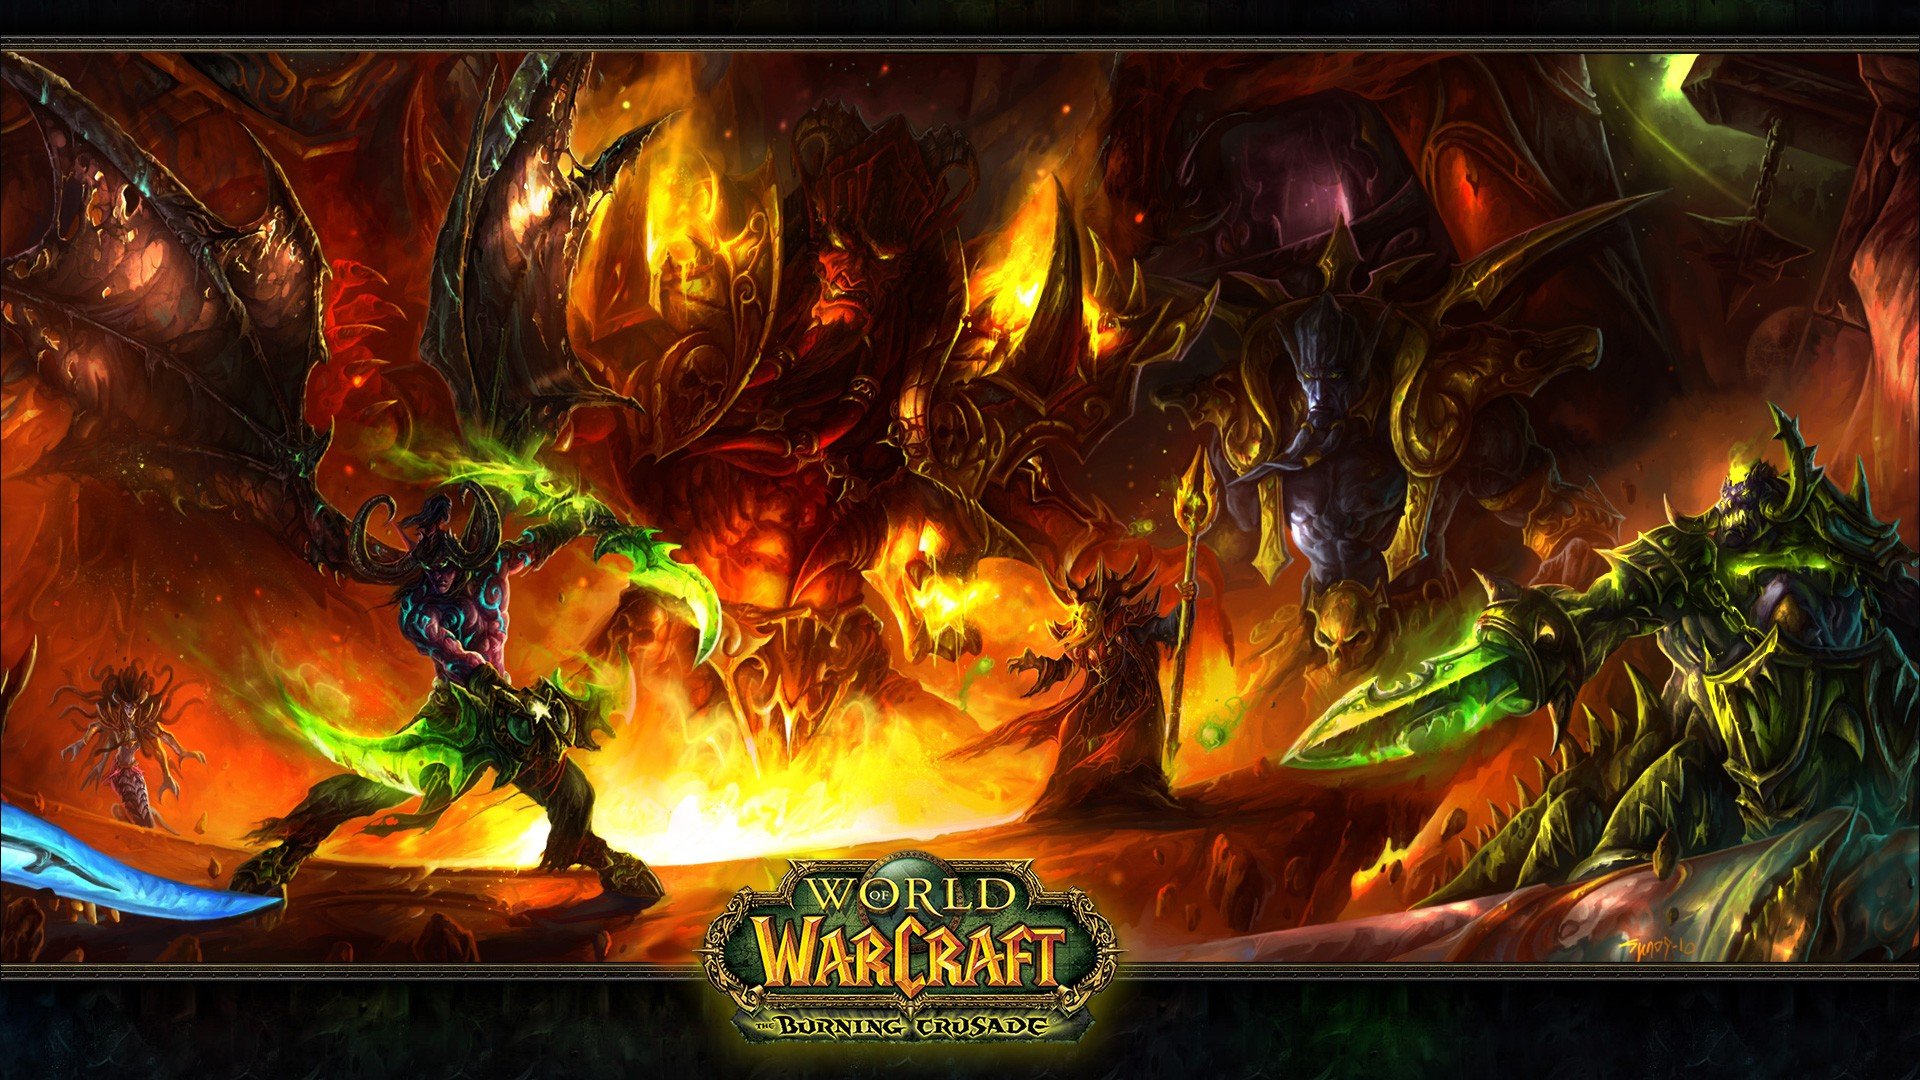 http://gazettereview.com/wp-content/uploads/2015/06/World-of-Warcraft.jpg